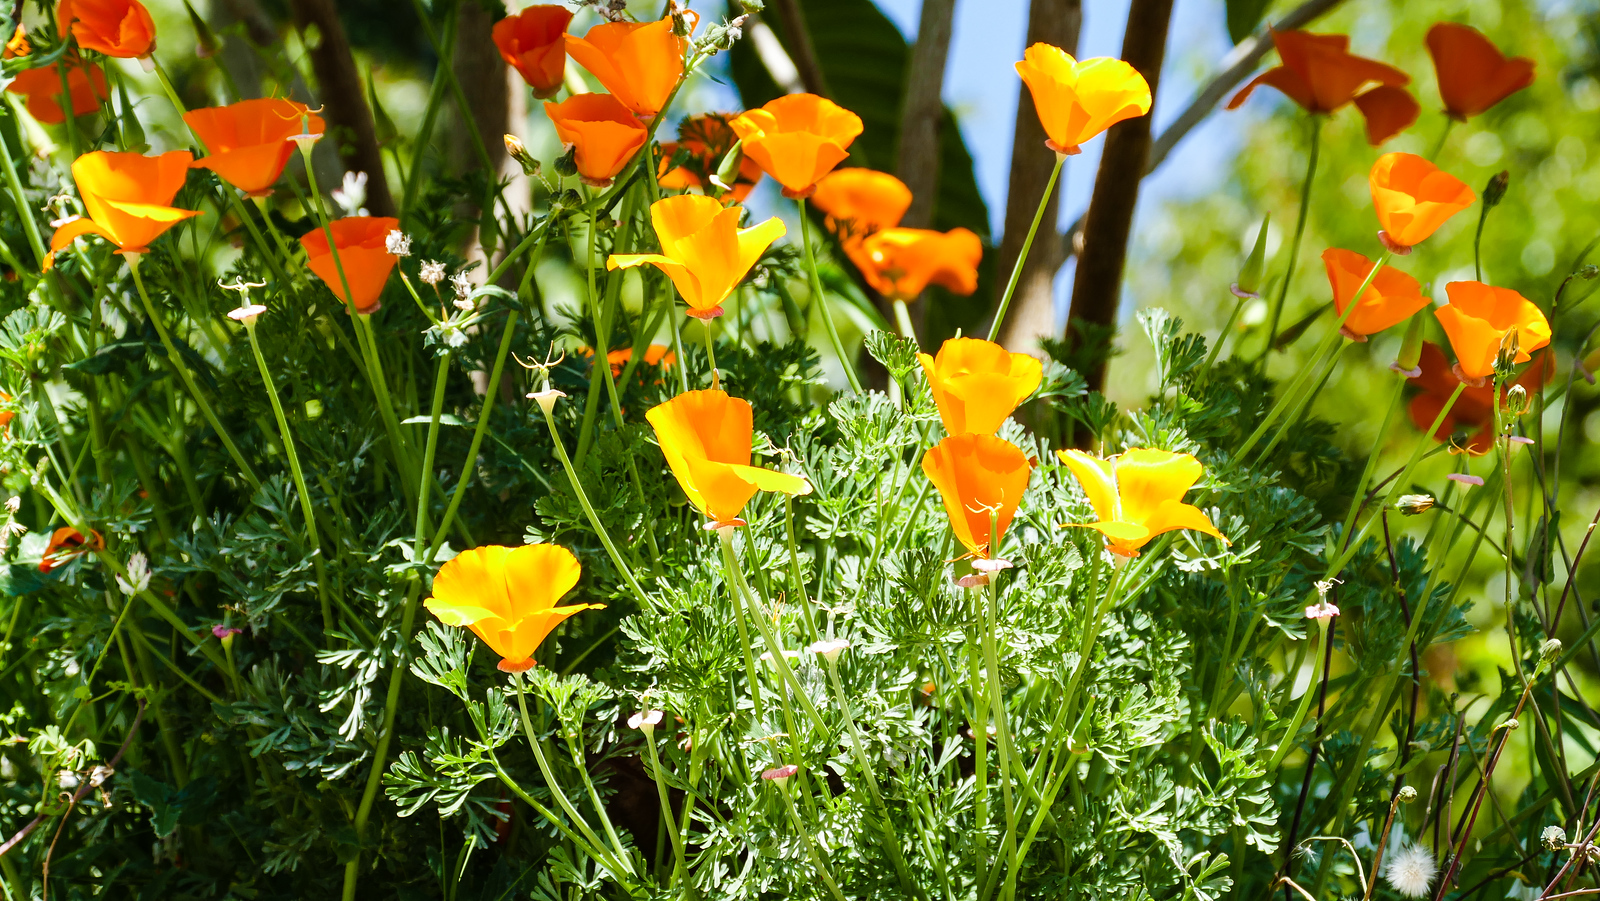 orage and yellow poppy flowers in a field